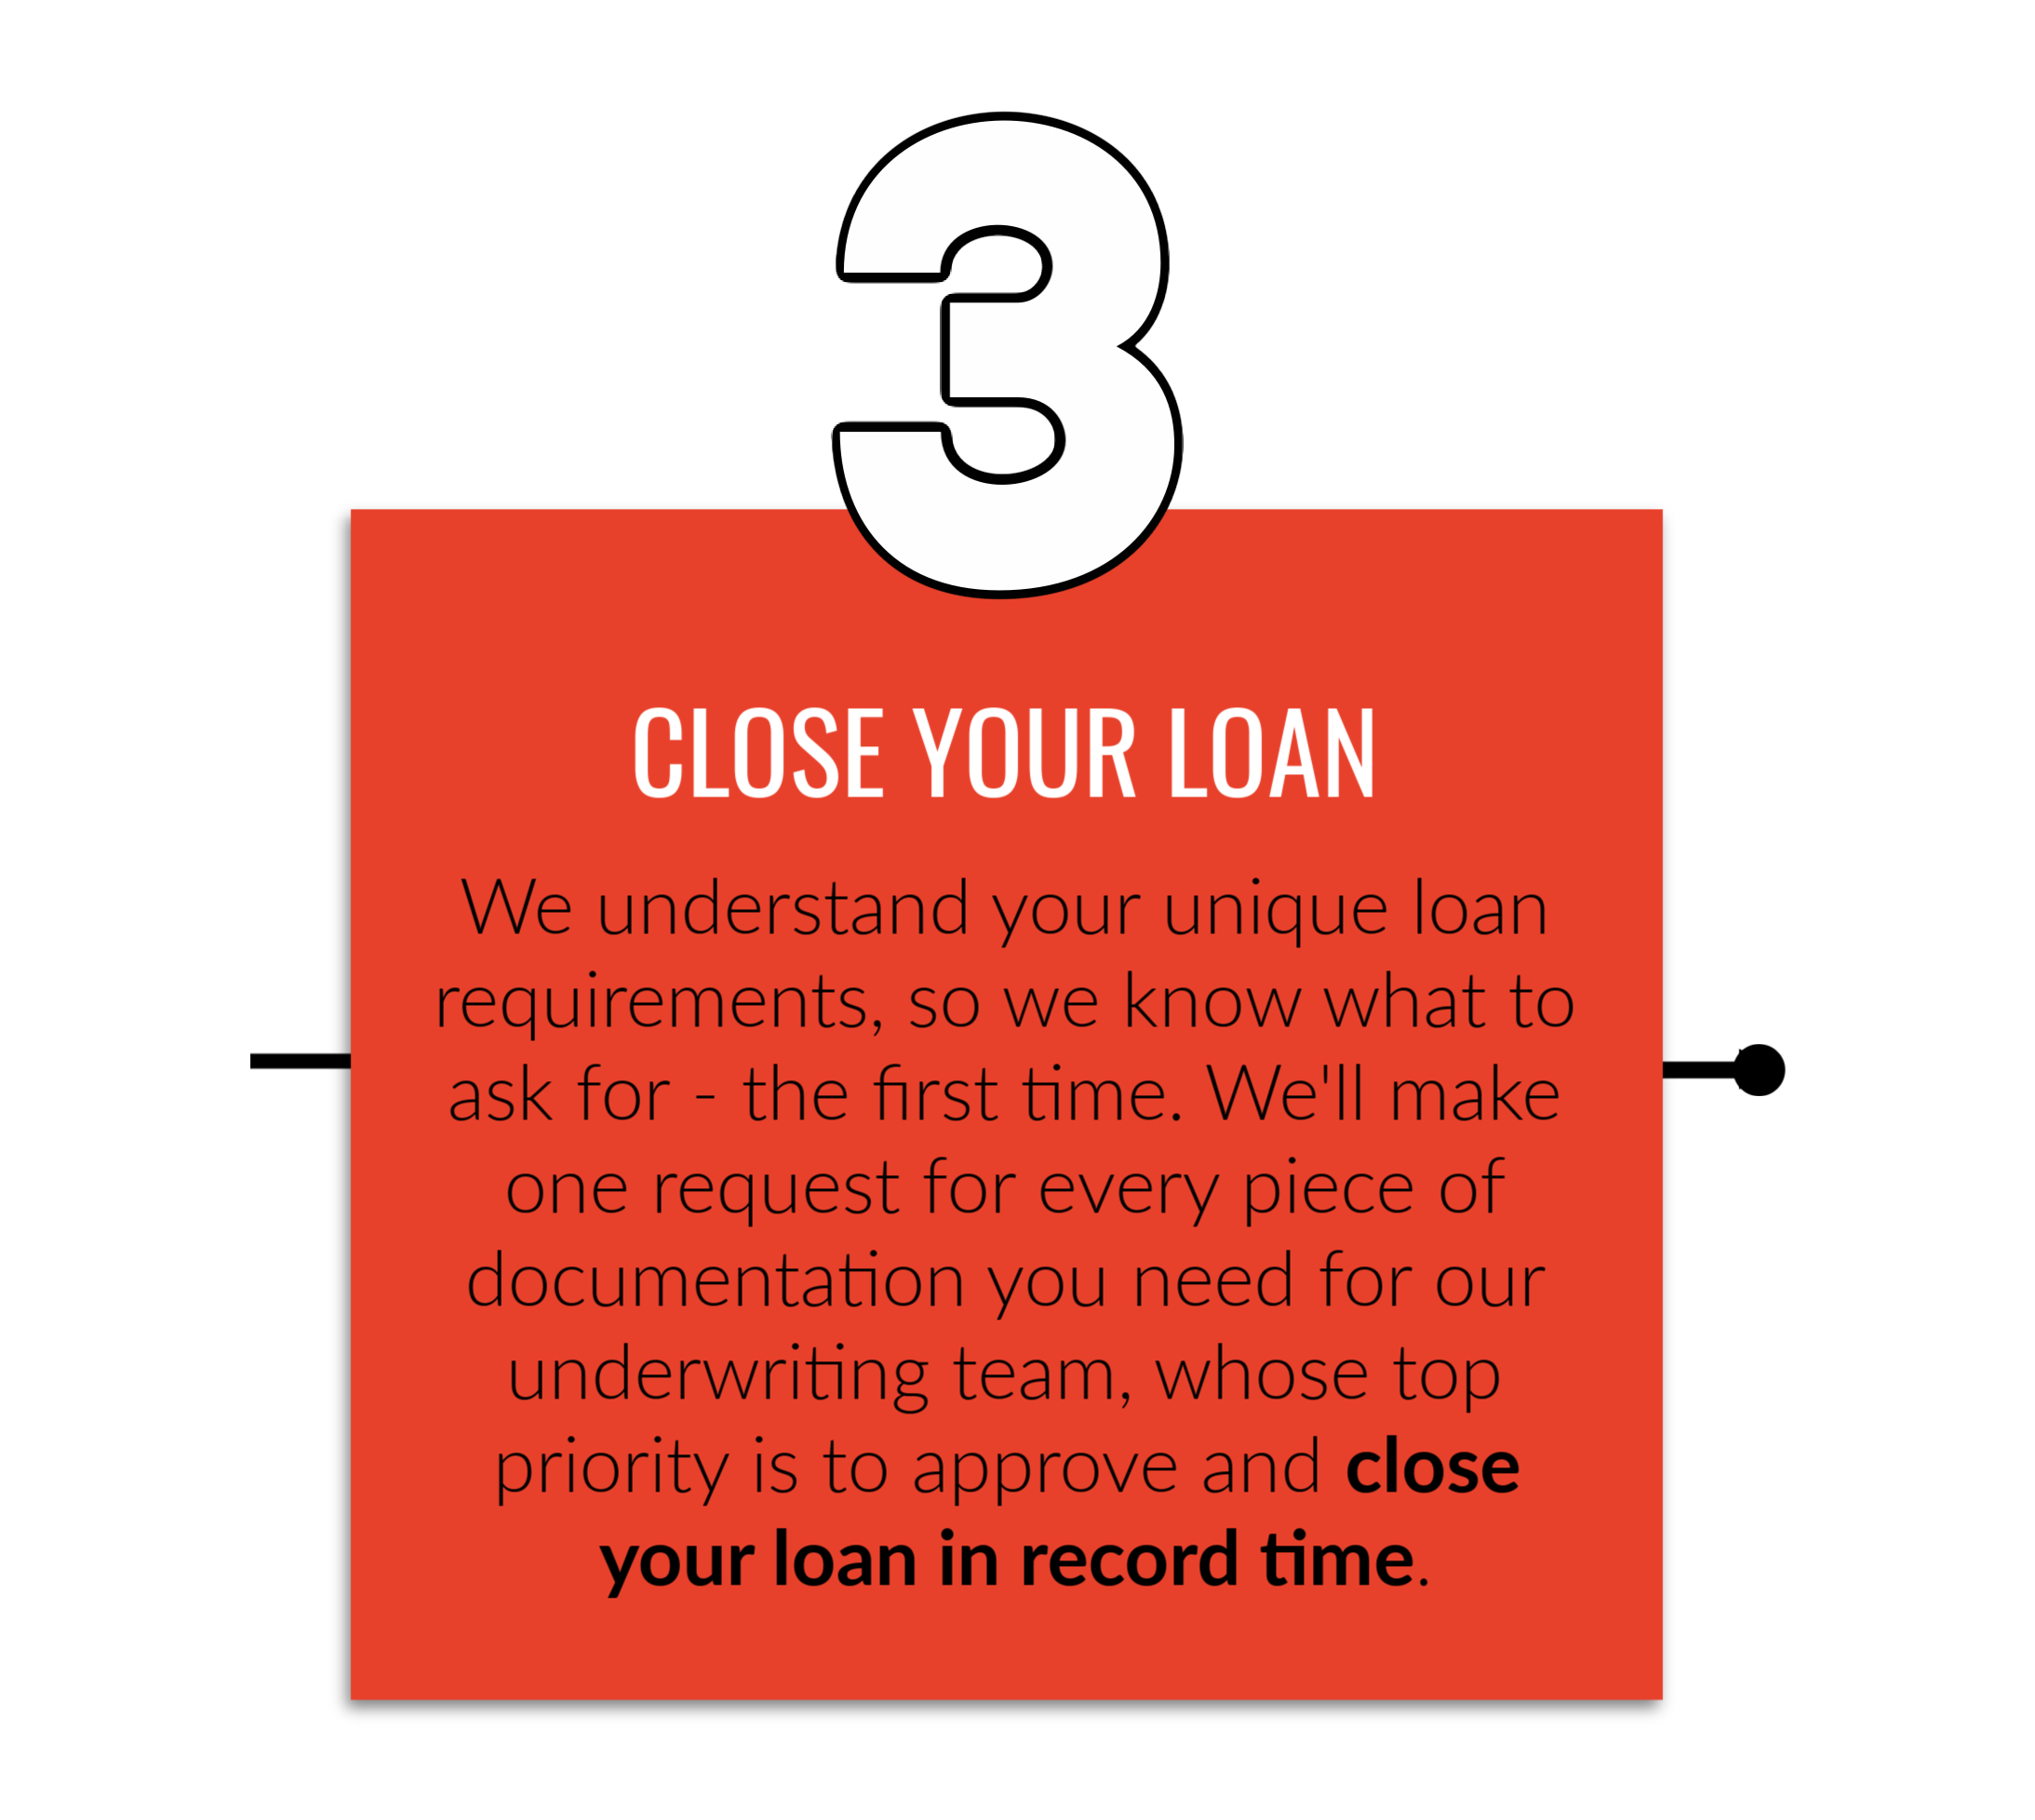 Our Process: Step 3, Close Your Loan